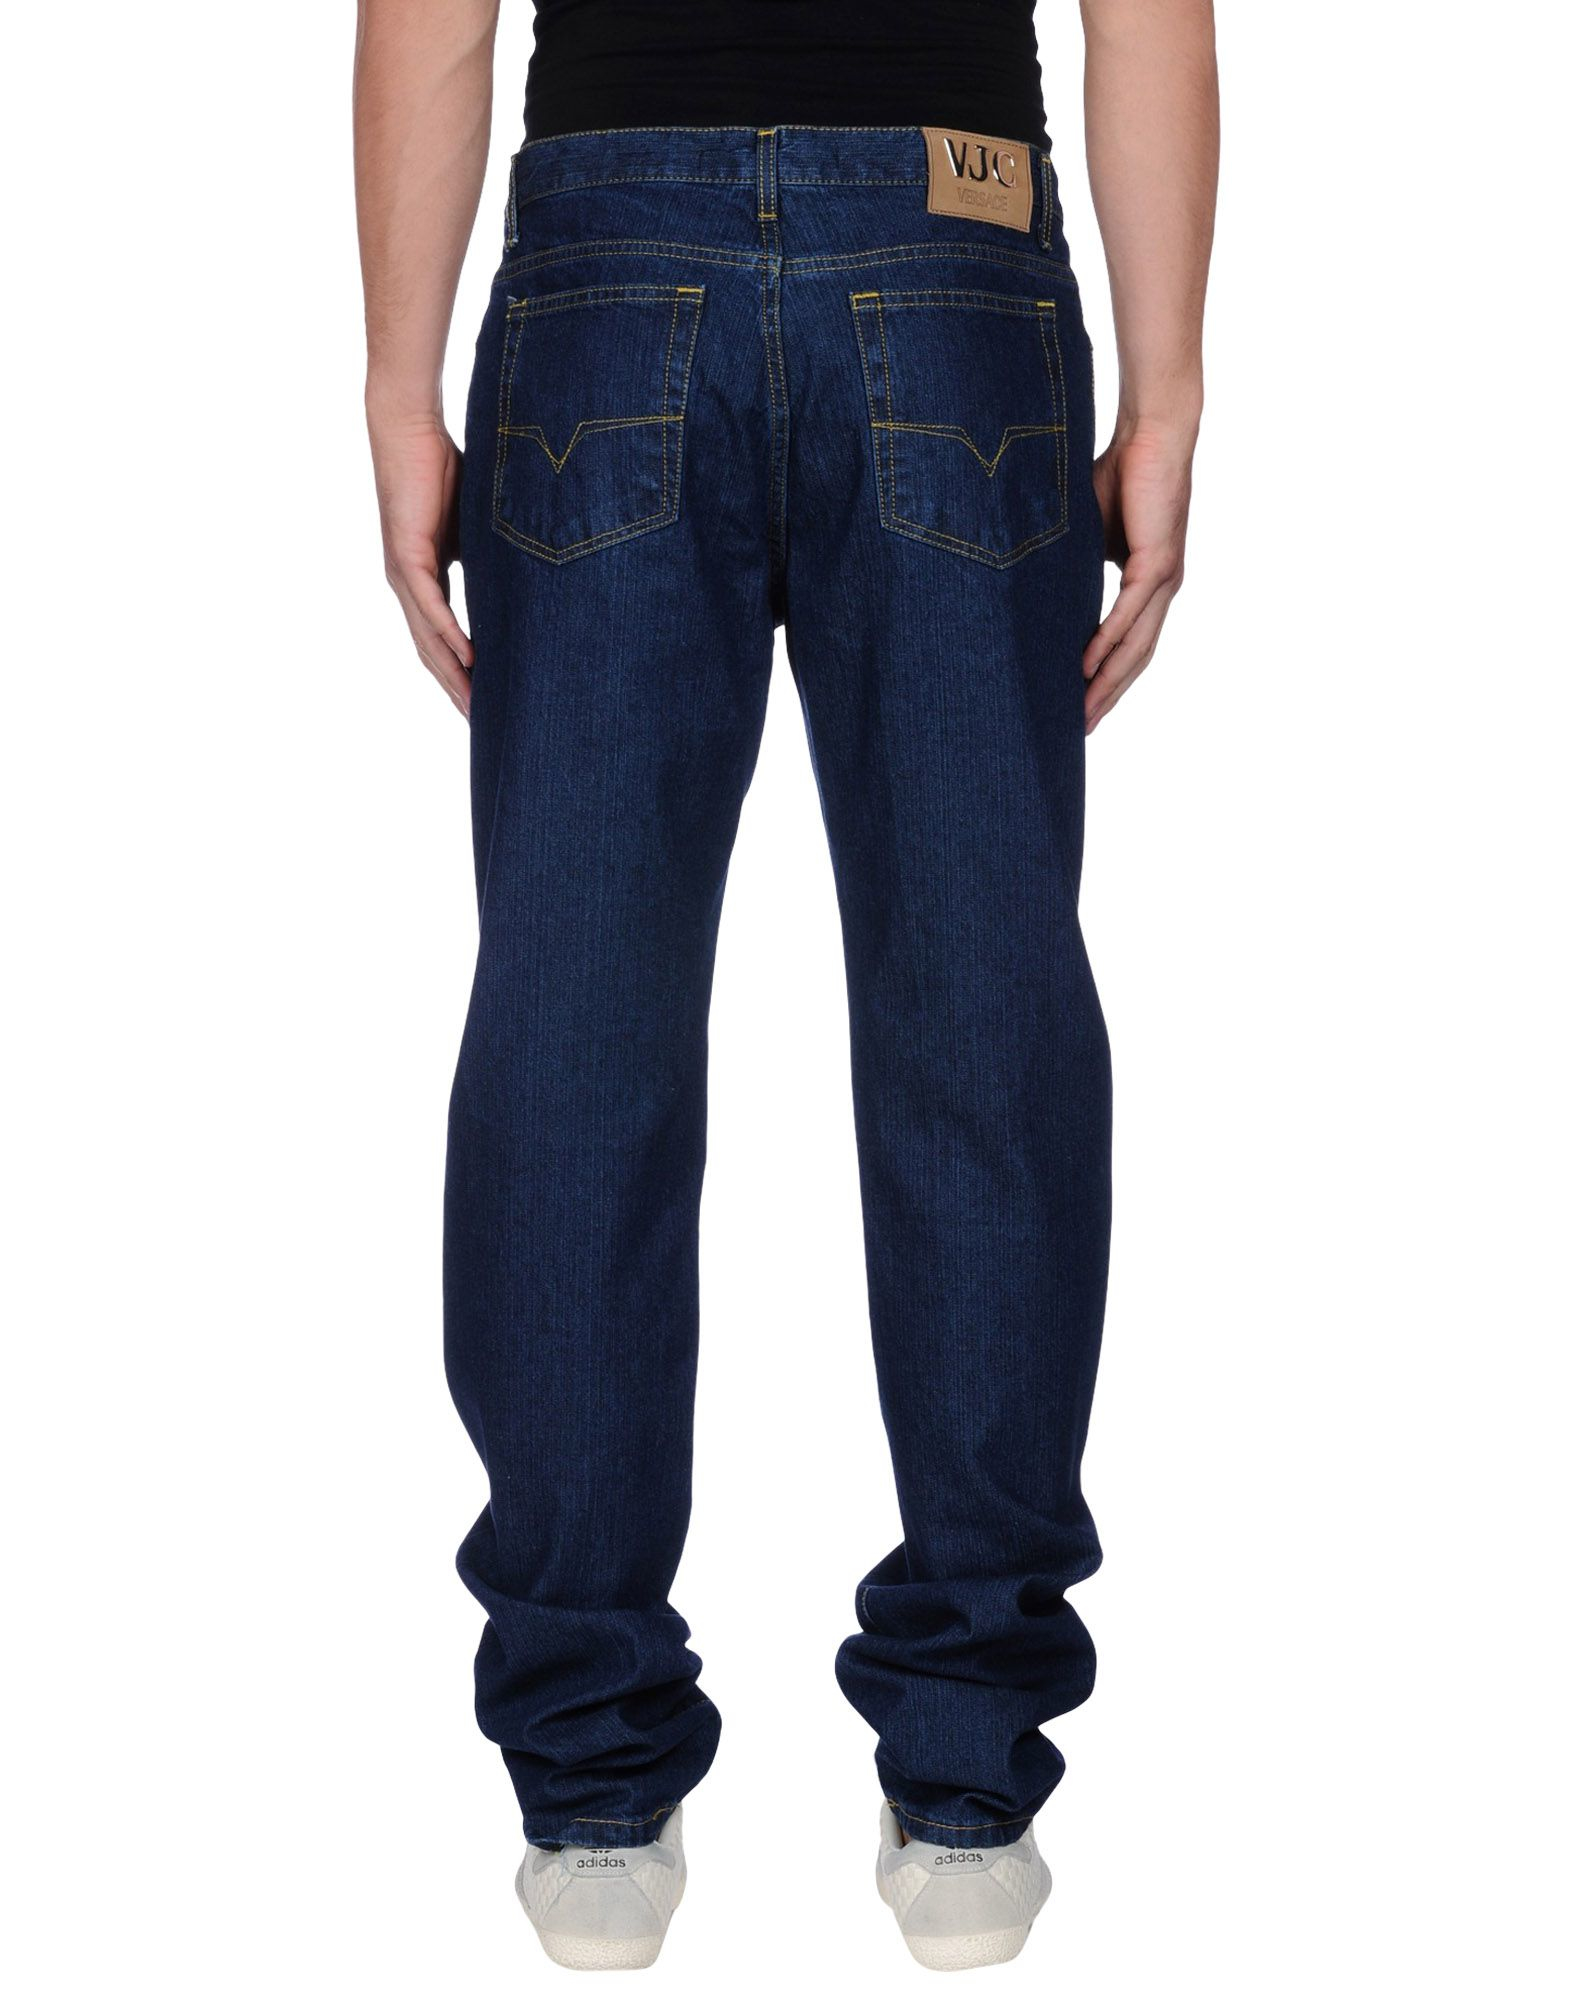 Versace jeans Denim Trousers in Blue for Men